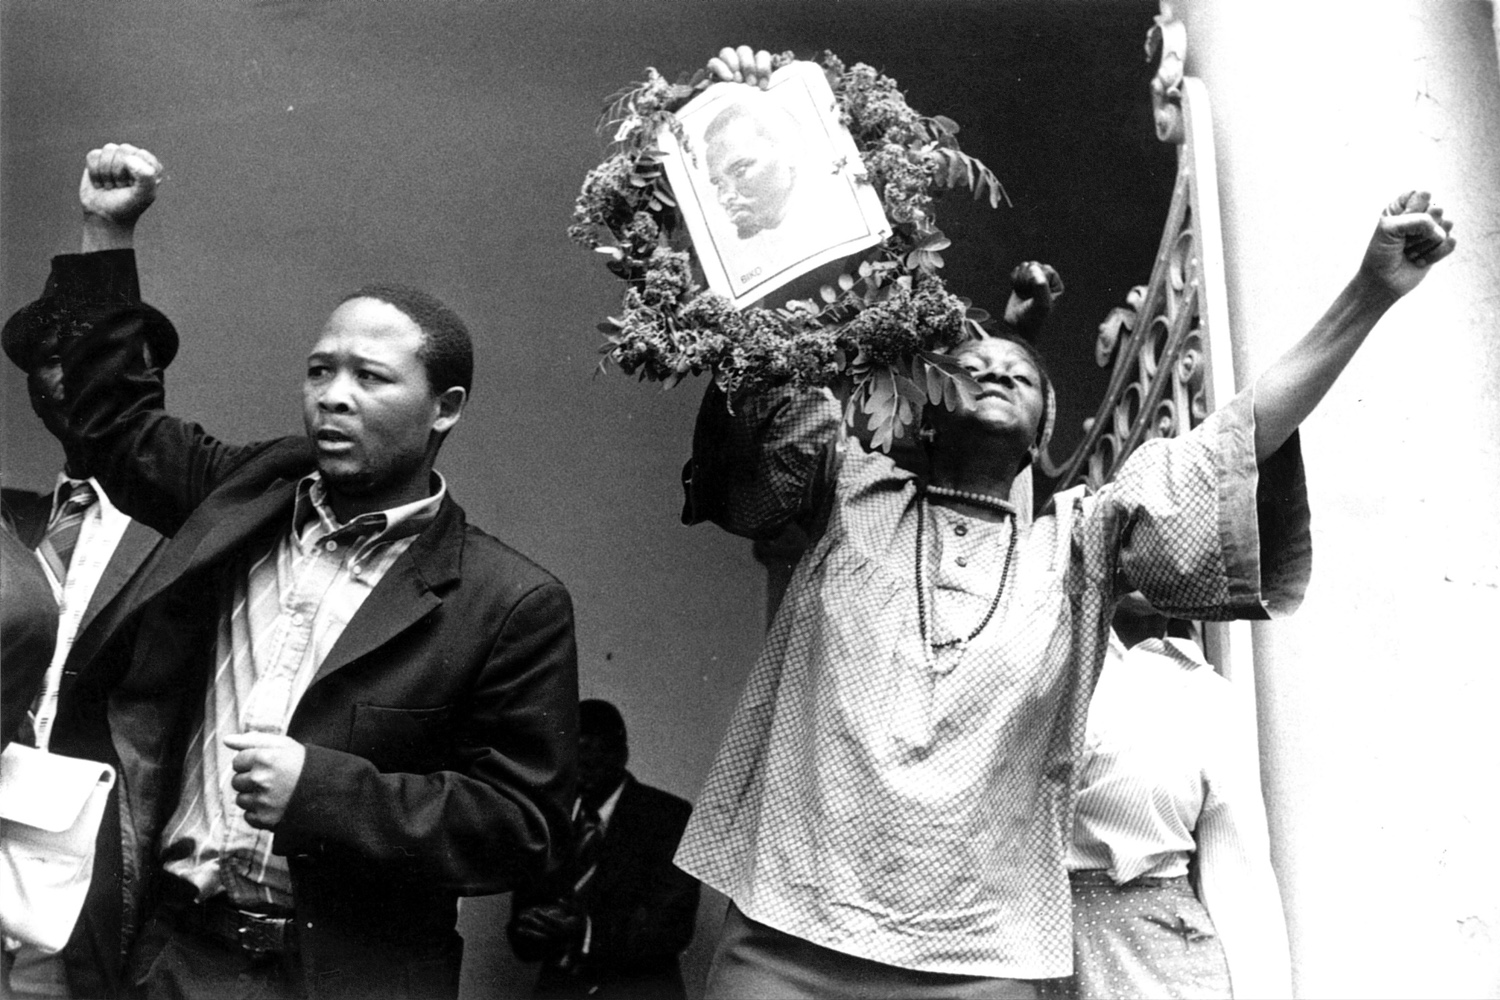 Steve Biko, the 30-year-old leader of the black consciousness movement in South Africa died while in police hands. When the inquest was held in Pretoria, the world expected that there would, at the very least, be some condemnation of the police methods which, for instance, included driving the dying detainee 750 miles naked in the back of a police truck. Instead the magistrate gave a brief statement in which he cleared the police of any responsibility. 1977.